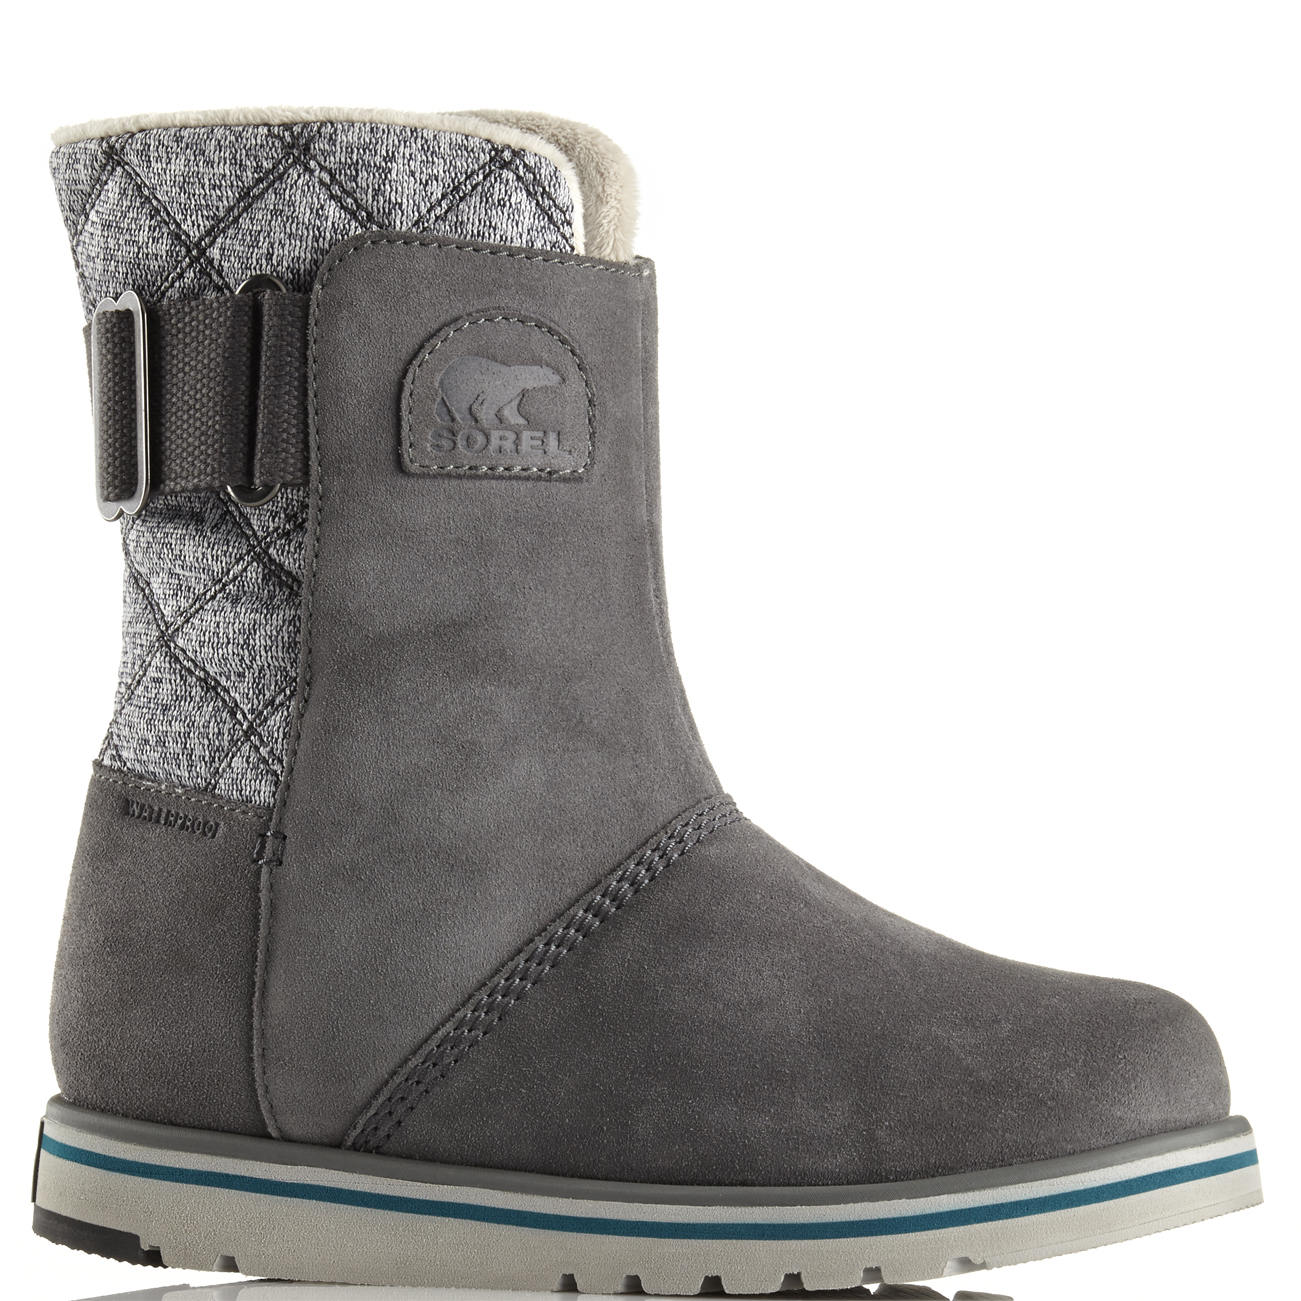 damen Sorel Rylee Waterproof Suede Winter Snow Rain Warm Mid Mid Mid Calf Stiefel UK 3-9 f44e7a